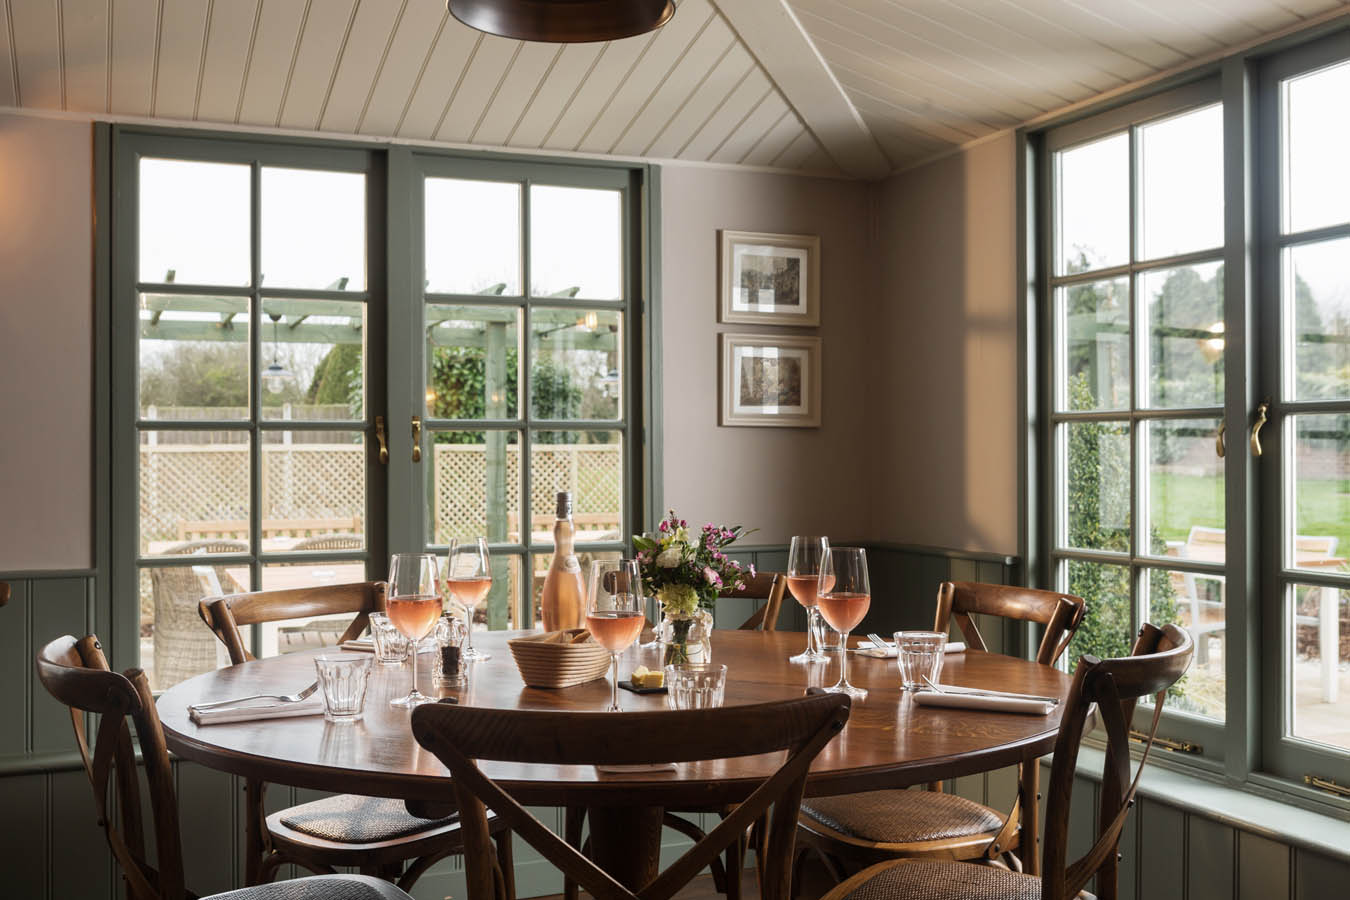 Dining Room Reigate  thefrenchbeebakerycom